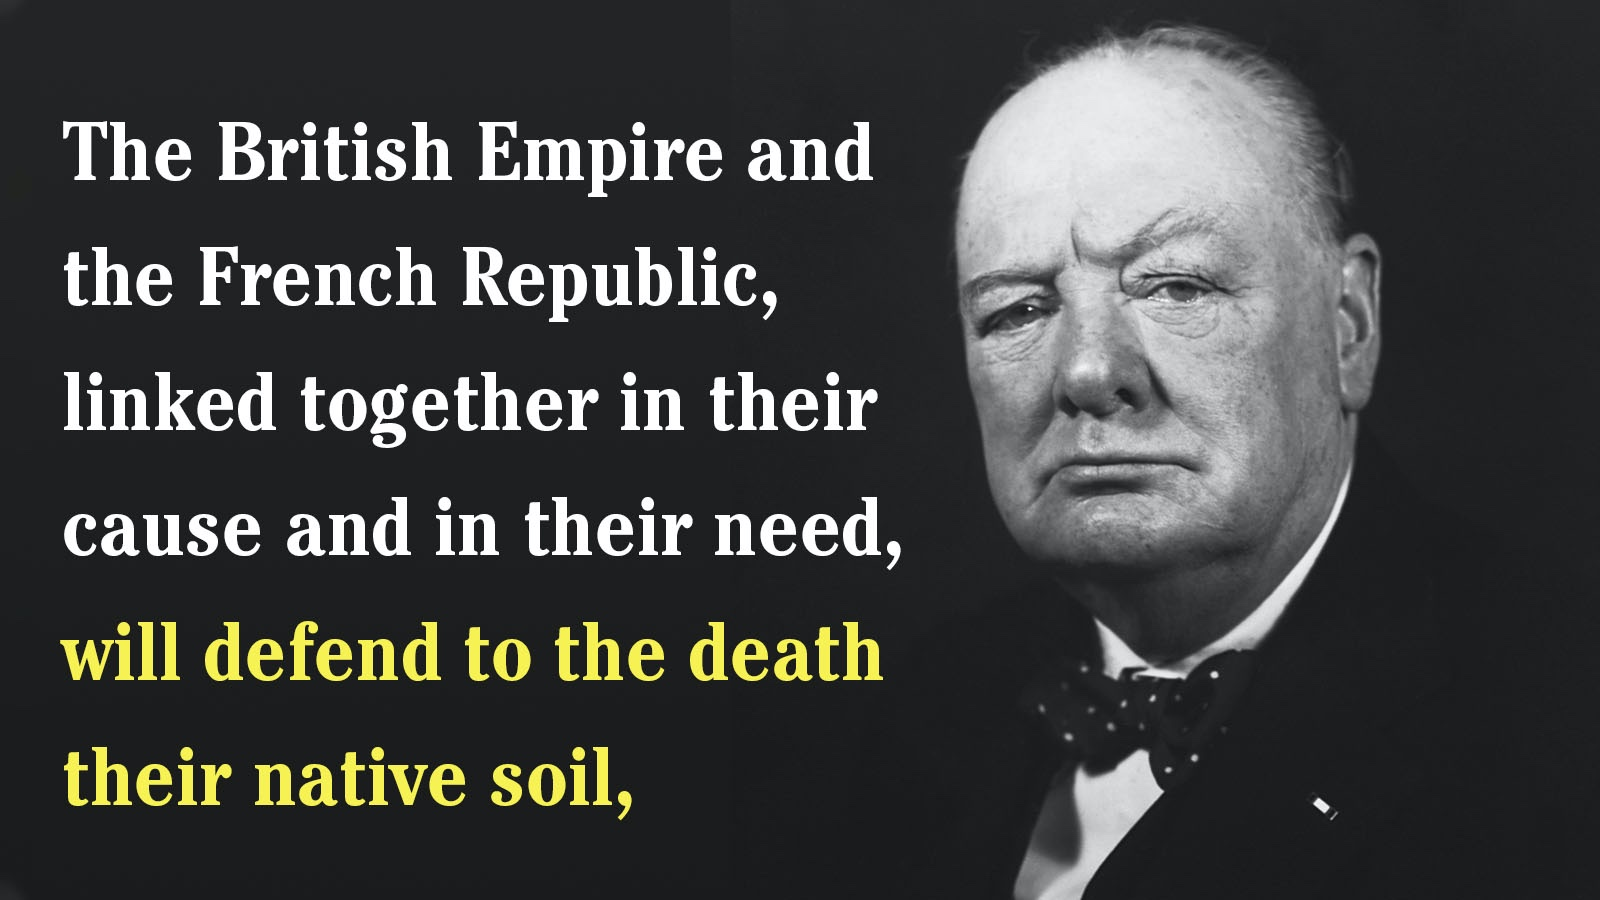 Winston Churchill anastrophe example